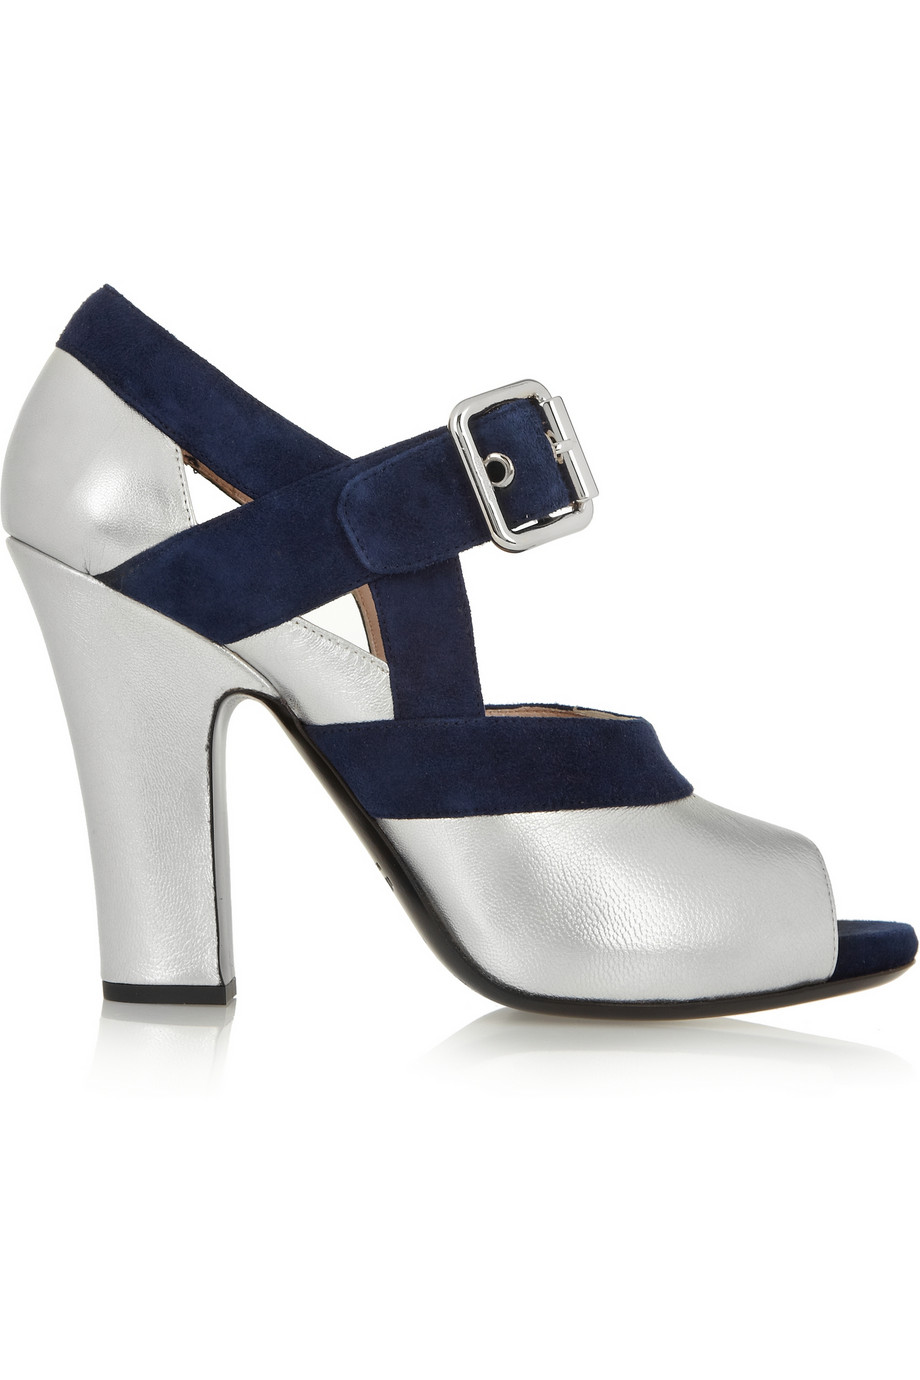 f2cb61d2fd5 Lyst - Miu Miu Metallic Leather And Suede Mary Jane Pumps in Metallic